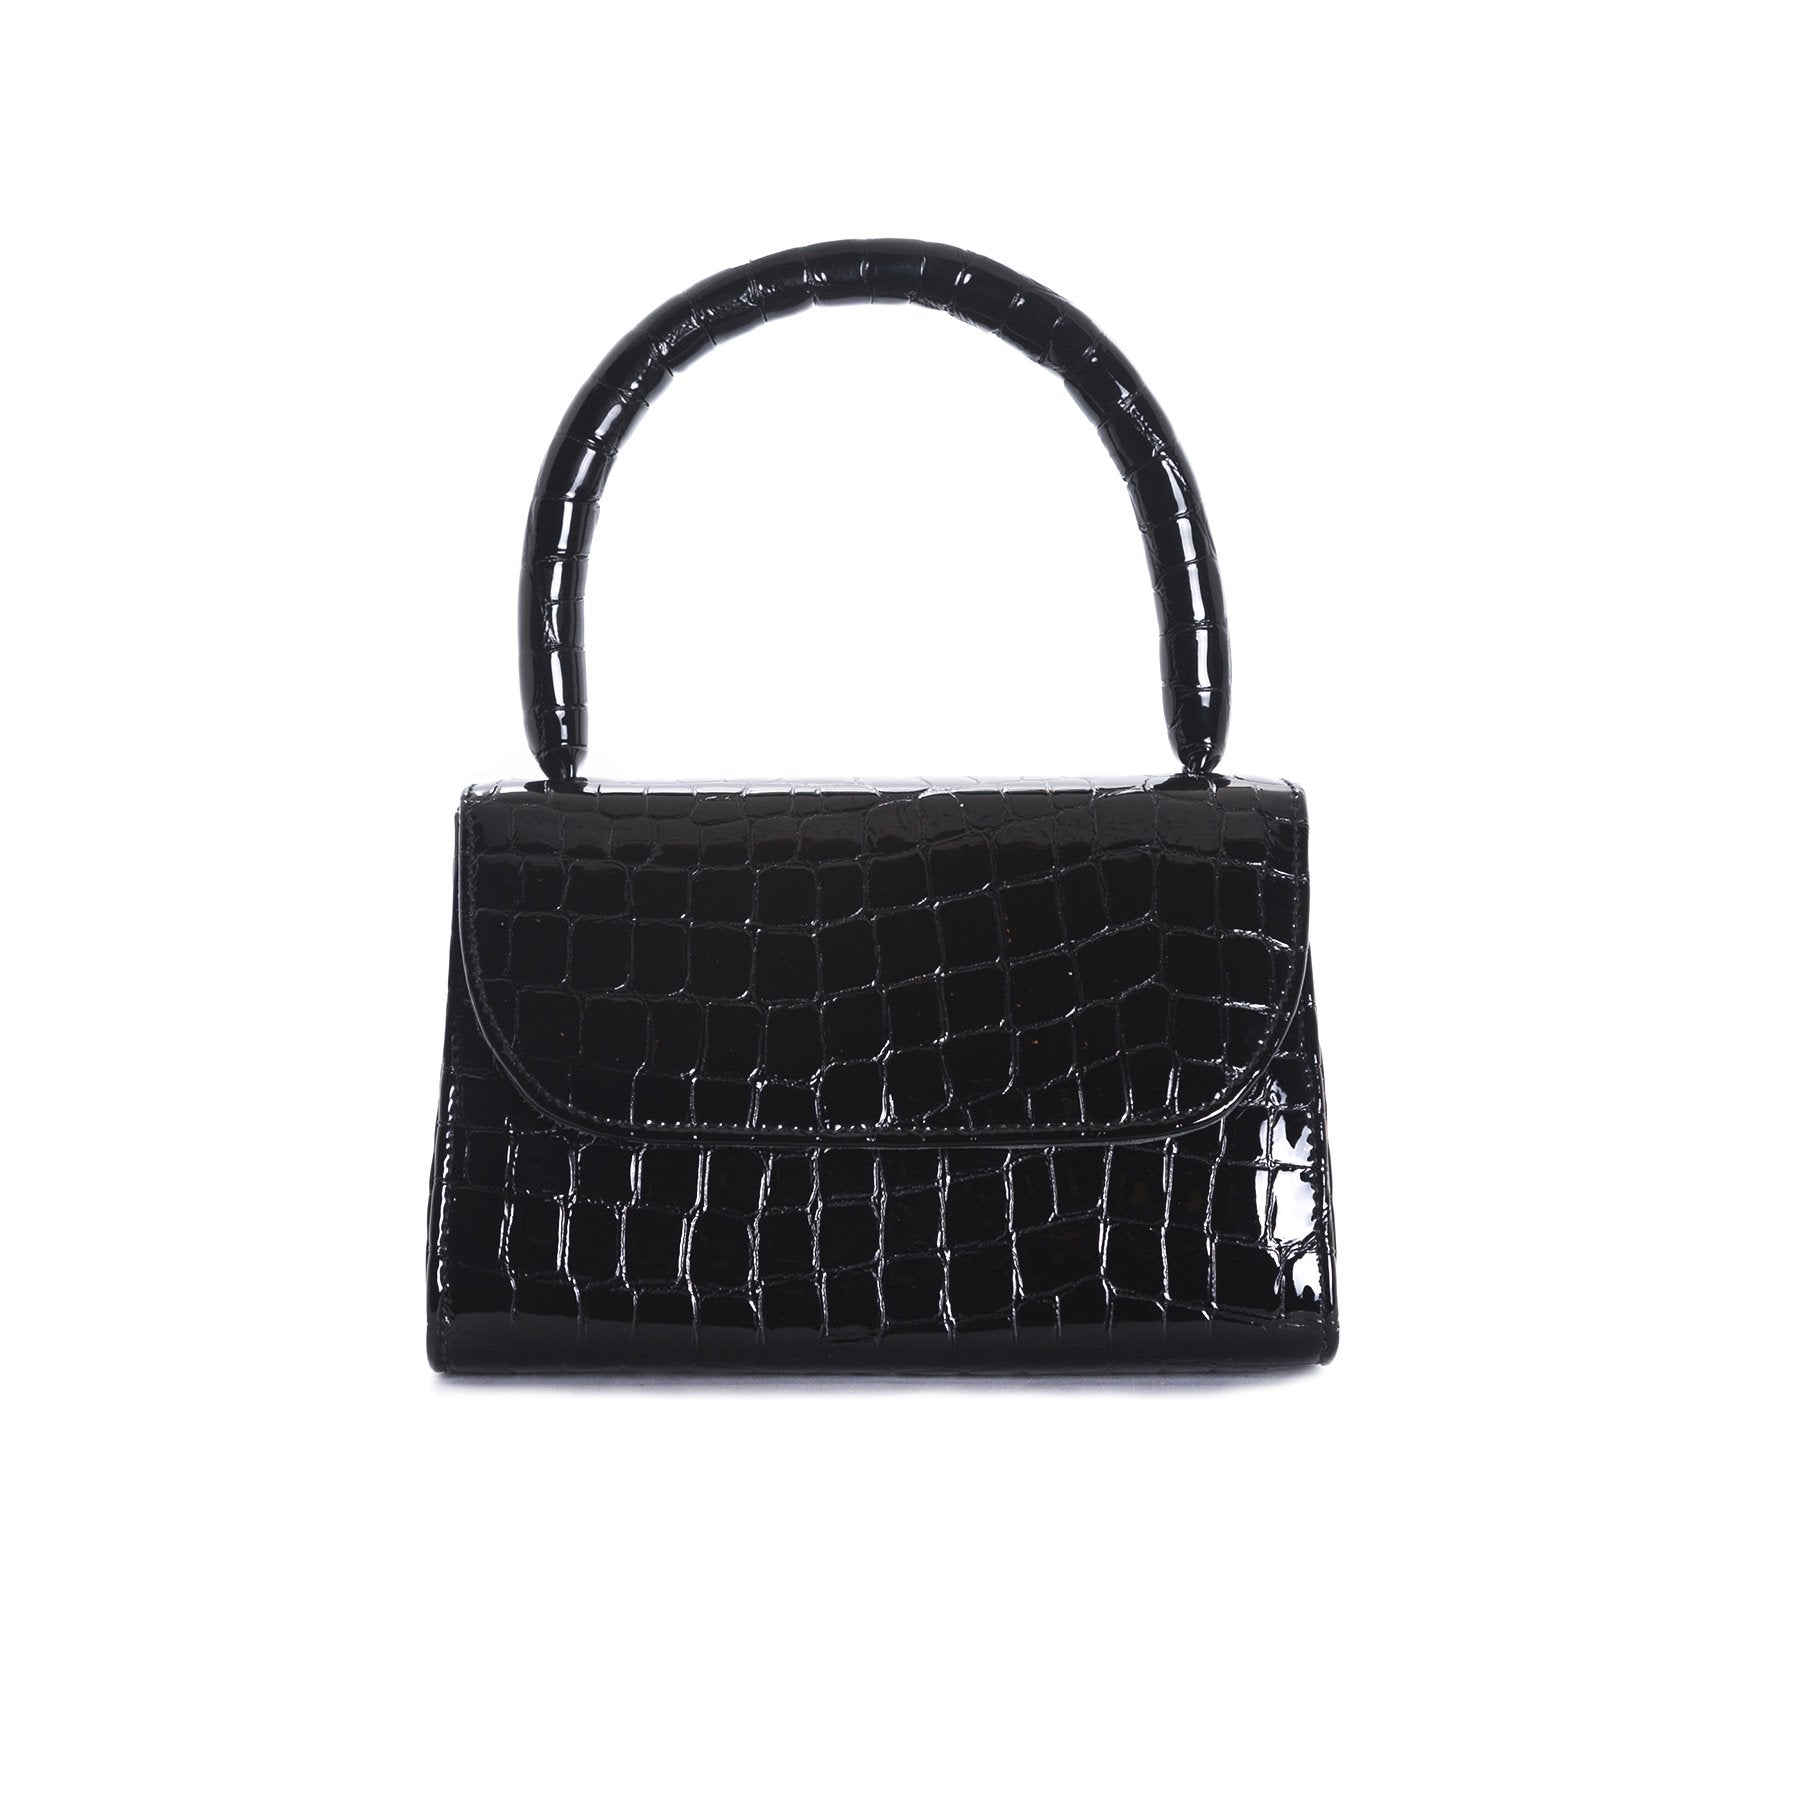 Anina Black Croco Leather Mini Bags